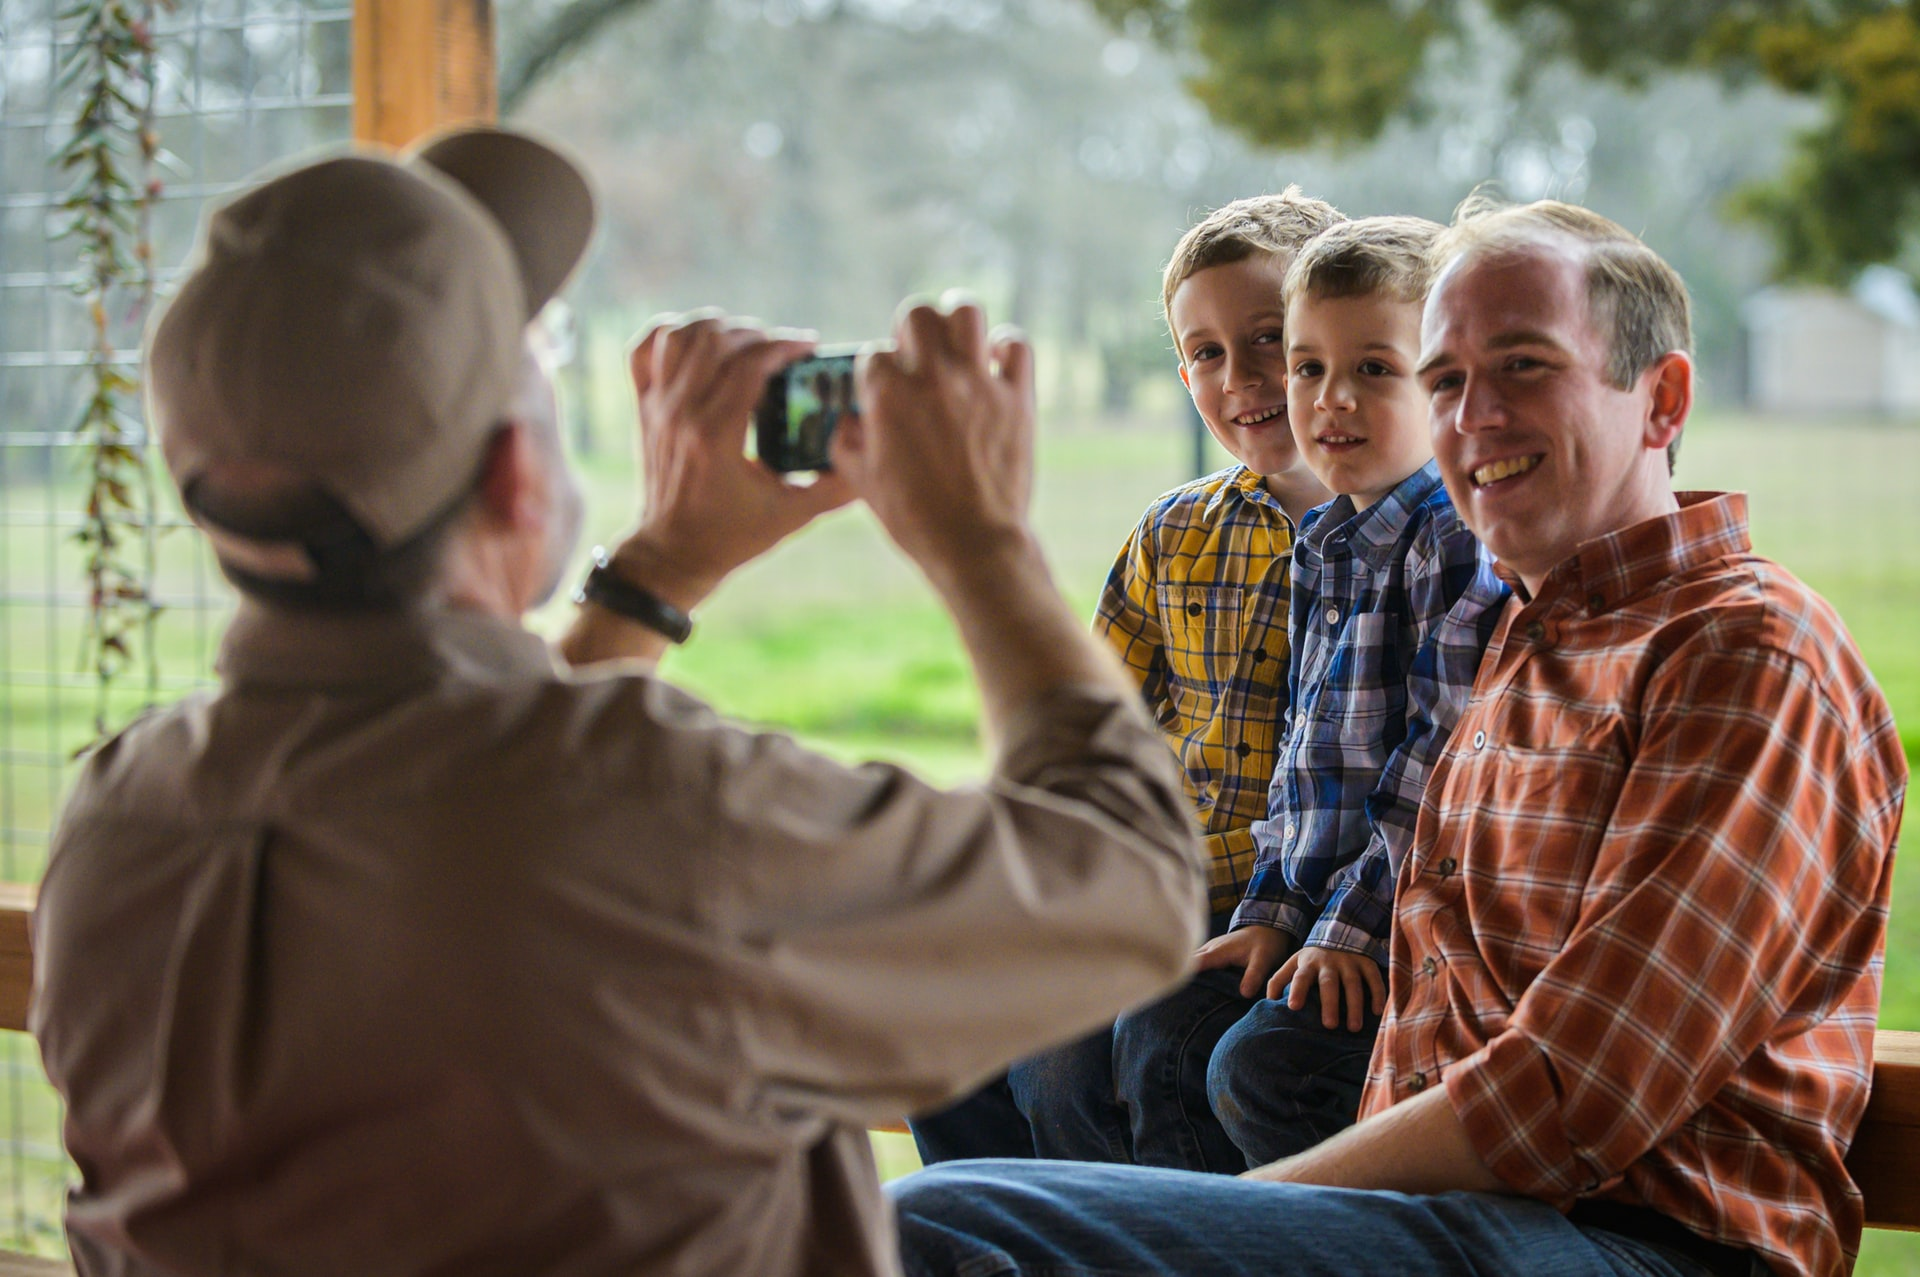 Spanning the Generations: 6 Ways to Make a Multigenerational Household Work